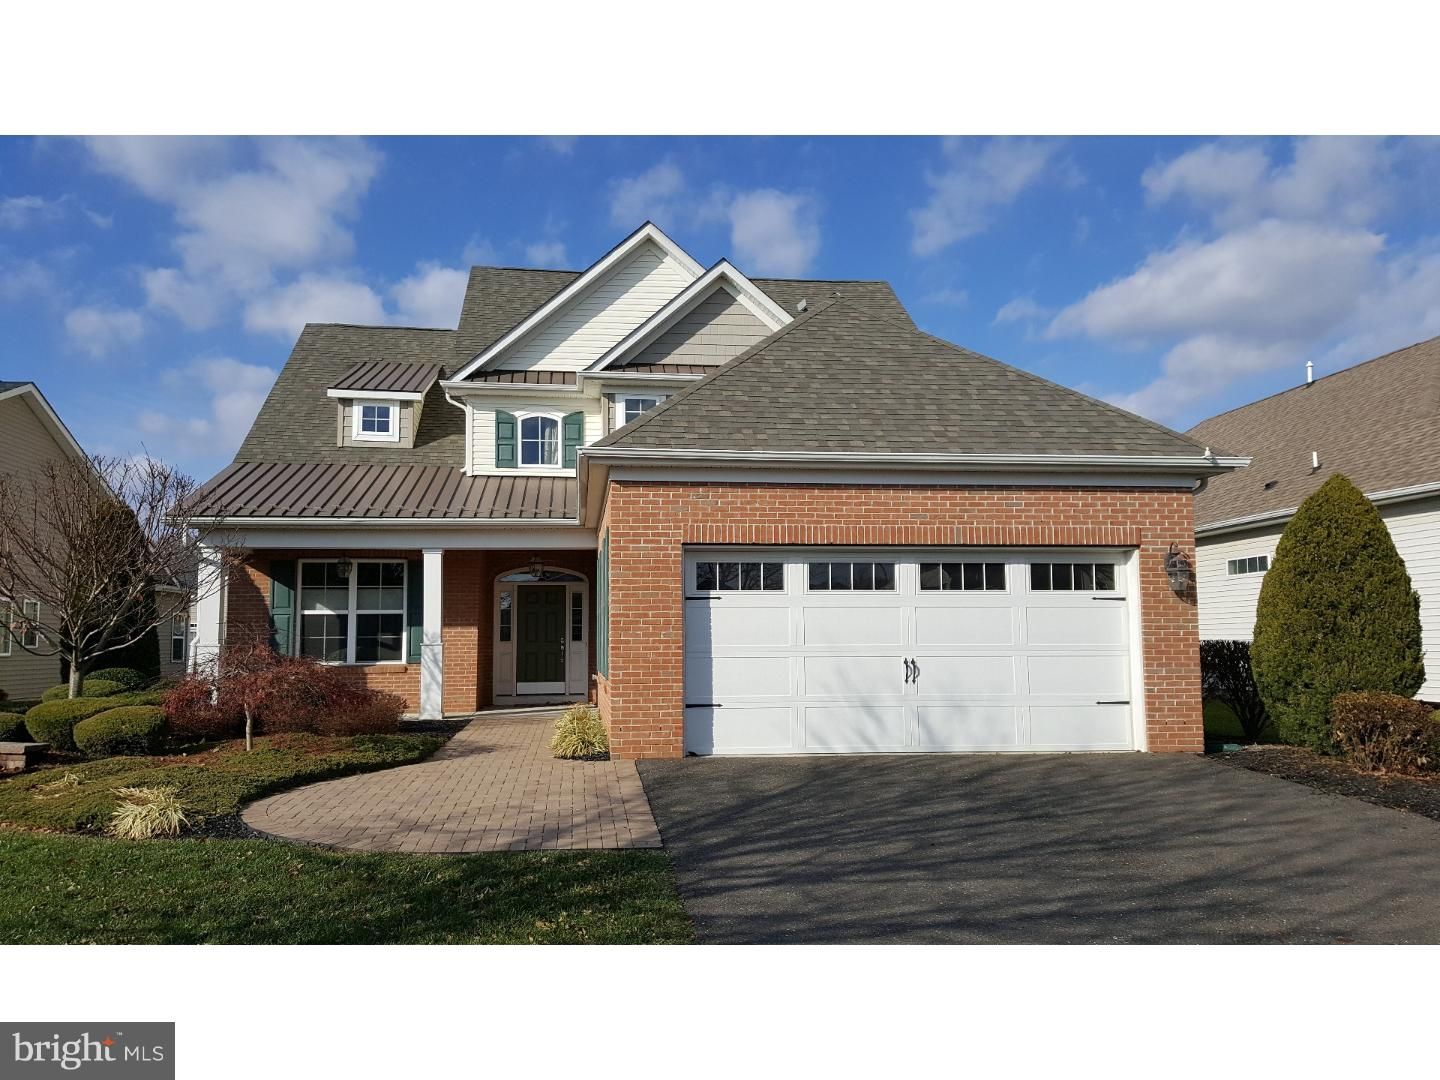 Single Family Home for Sale at 20 TUSCANY Drive West Windsor, New Jersey 08550 United StatesMunicipality: West Windsor Twp, West Windsor Twp